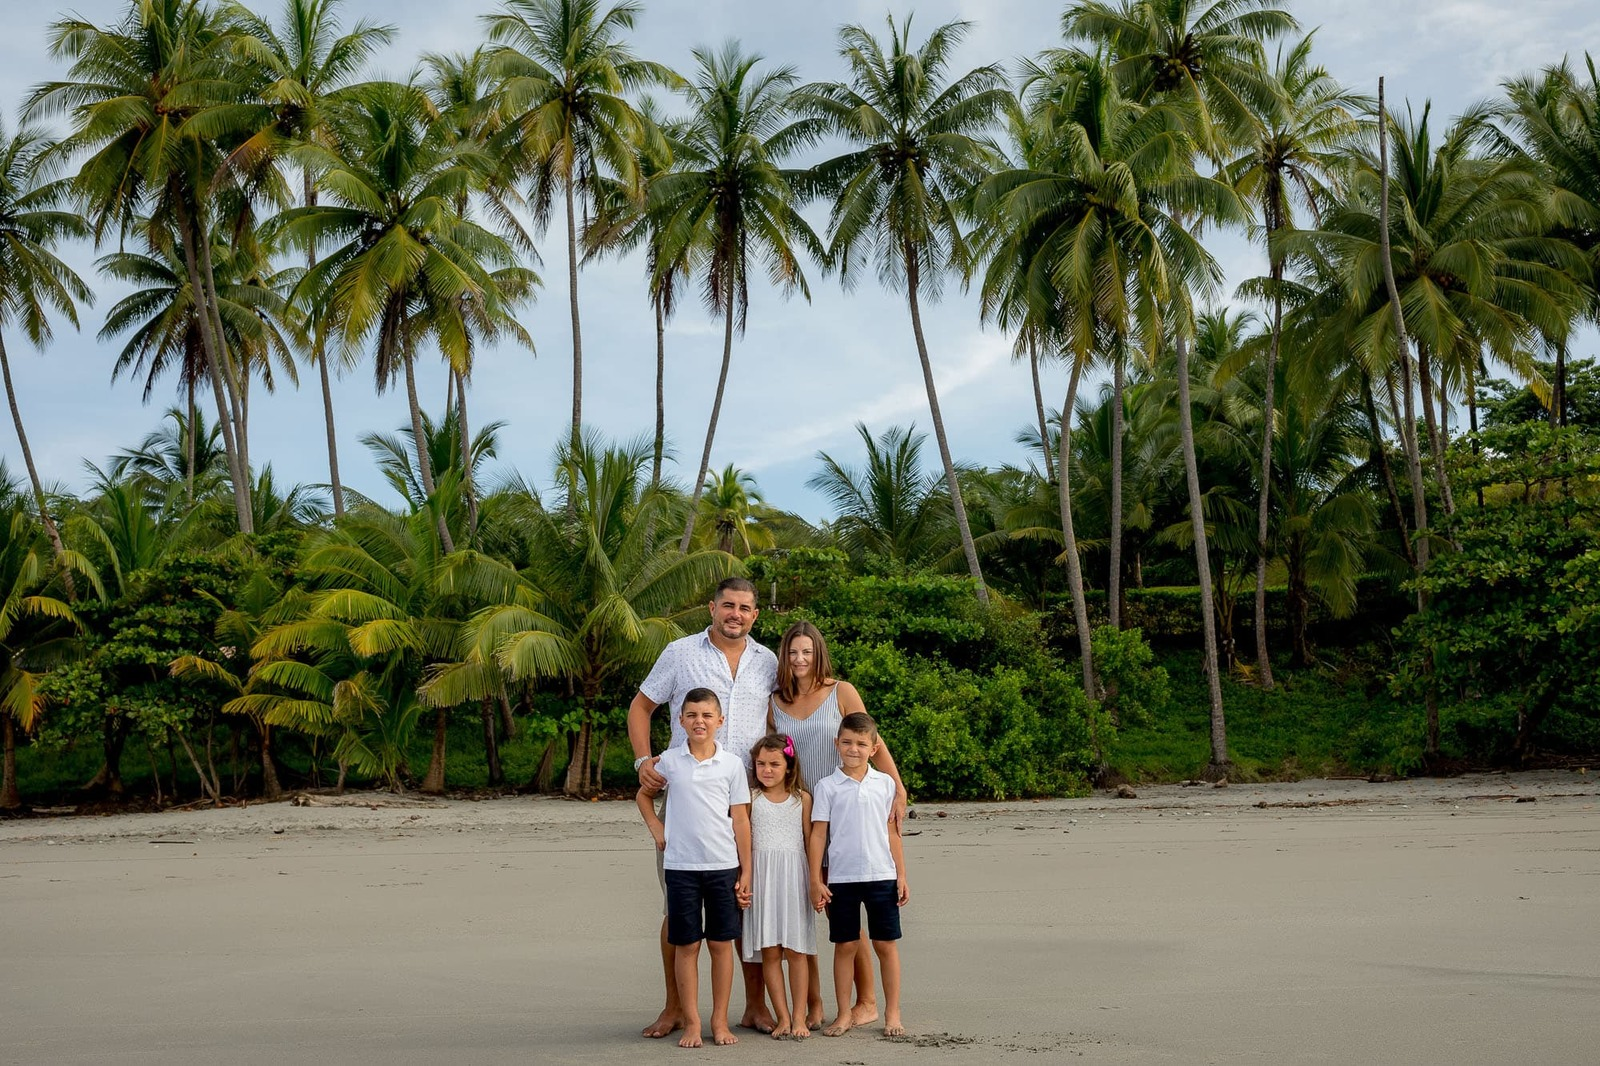 family photo with palm trees